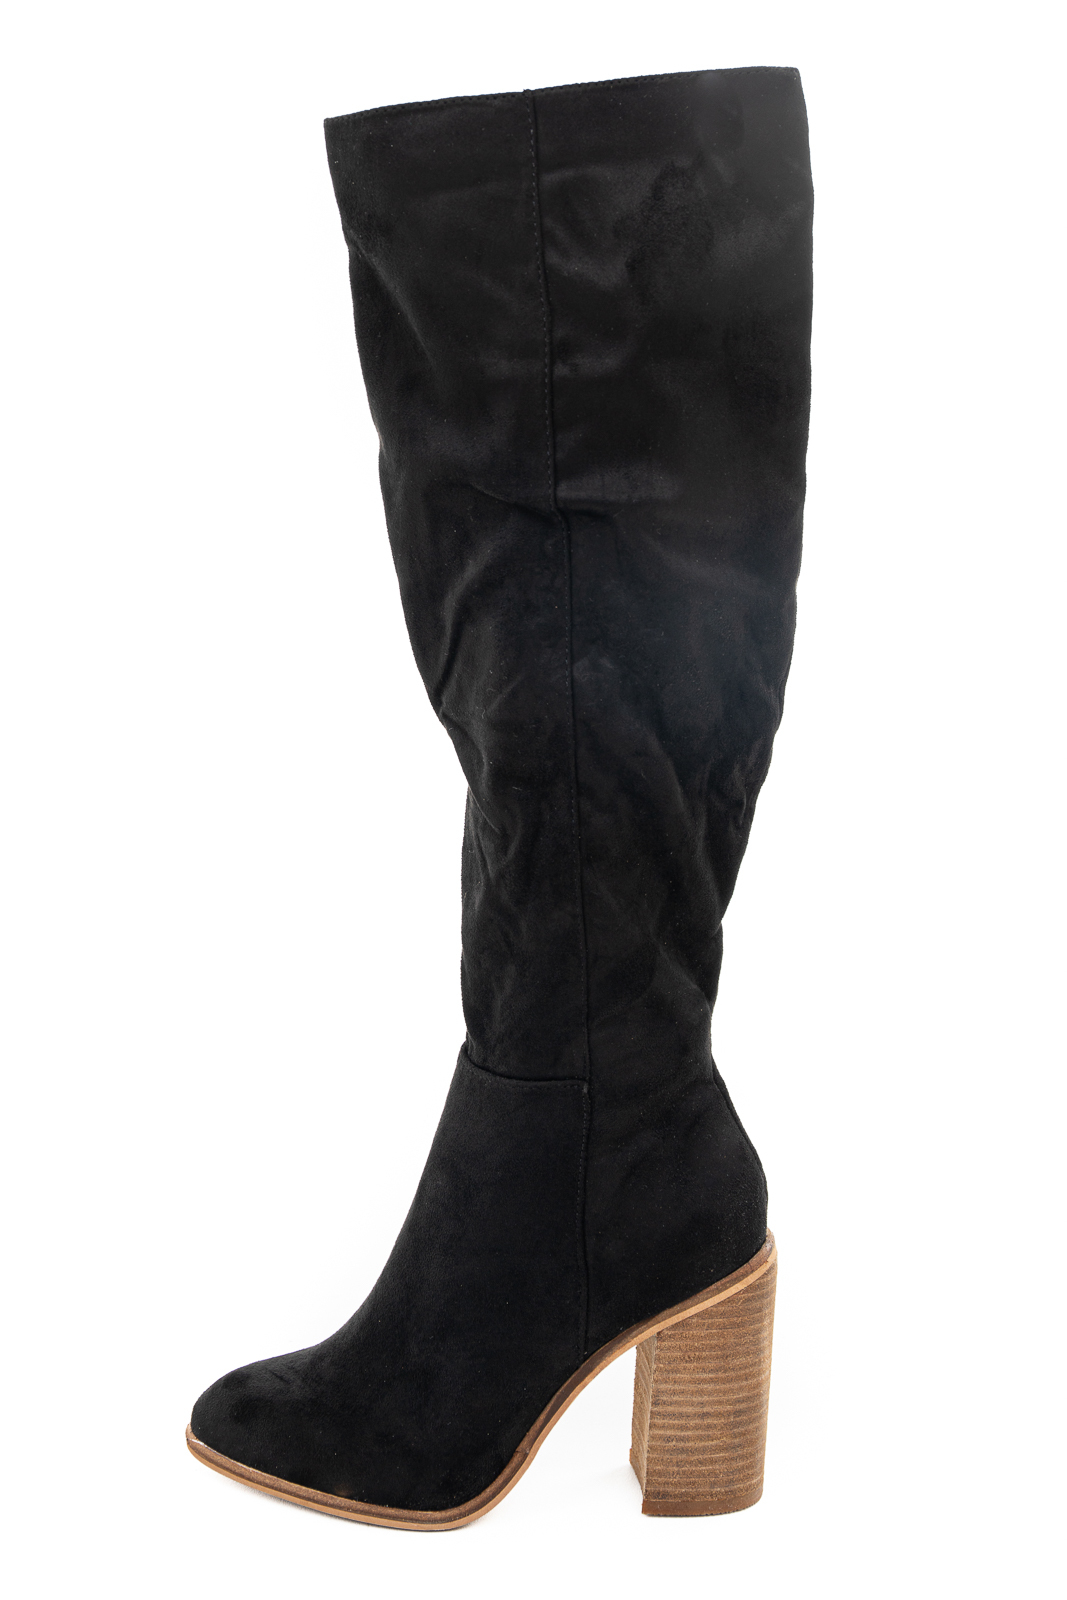 Black Faux Suede Tall Heeled Boots